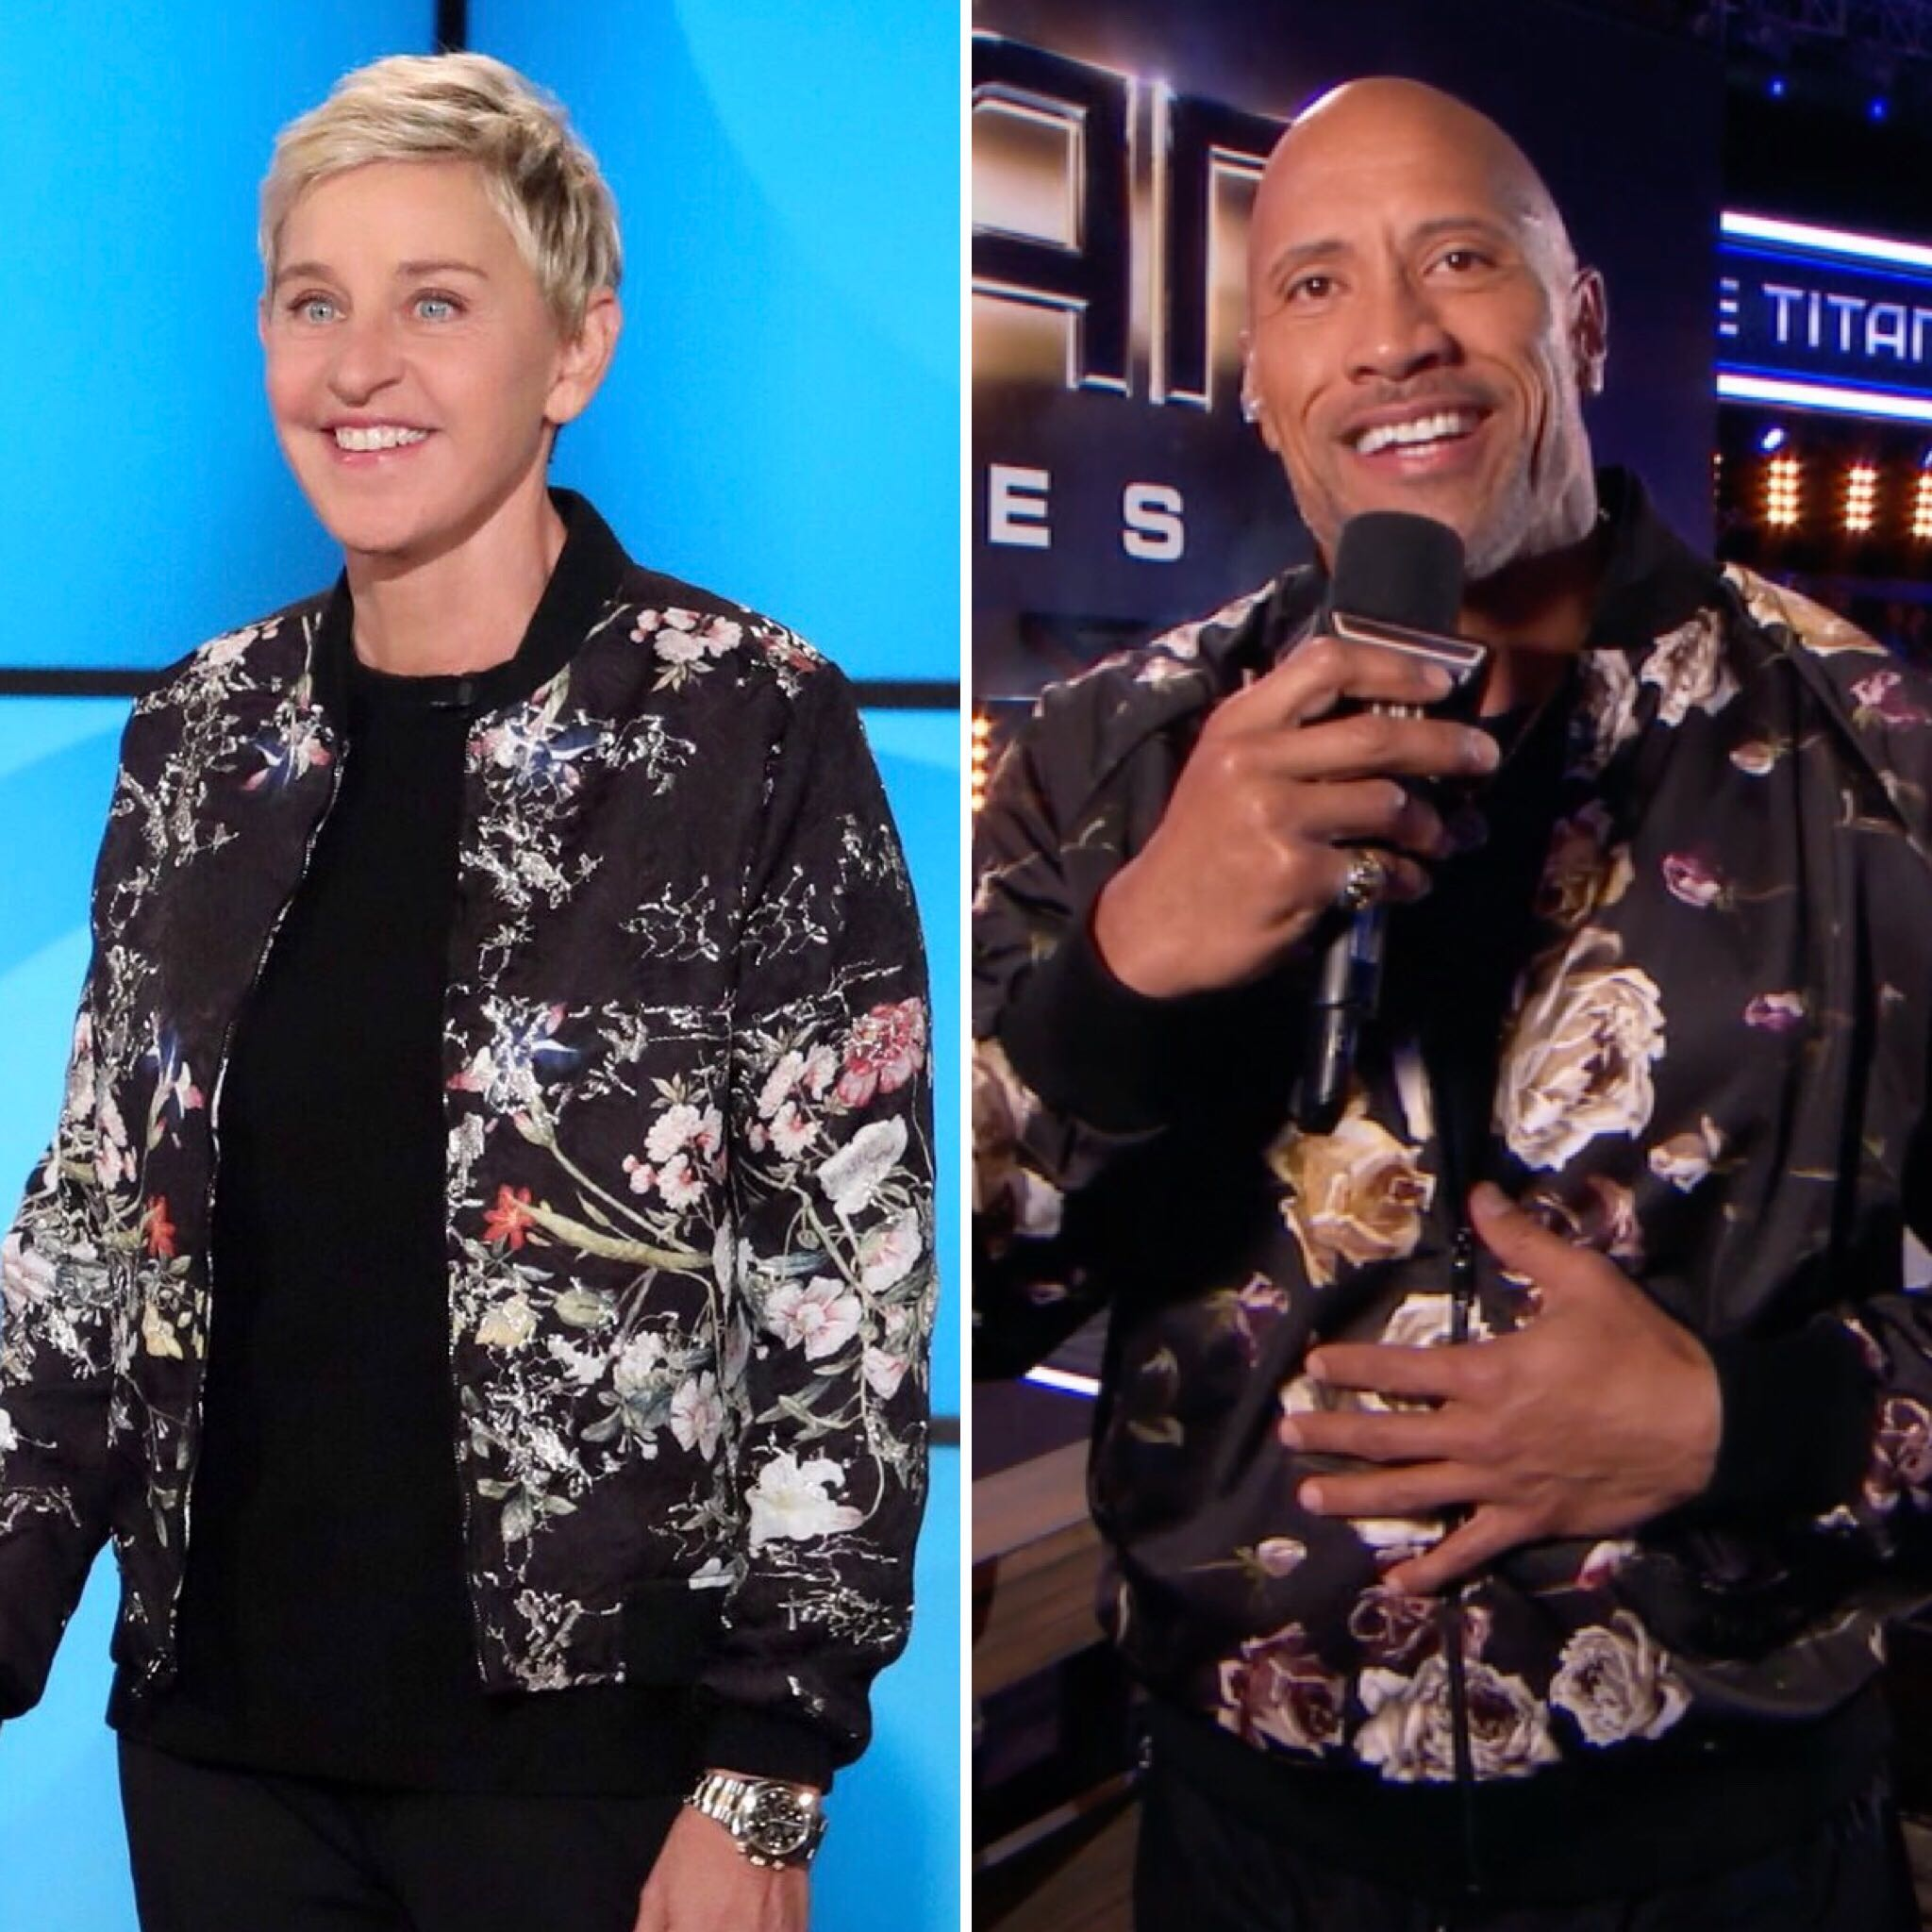 First, I did #GameofGames, then you do #TitanGames. I wore this jacket, then you wore it. What's next? @TheRock https://t.co/vvylyuNm8J